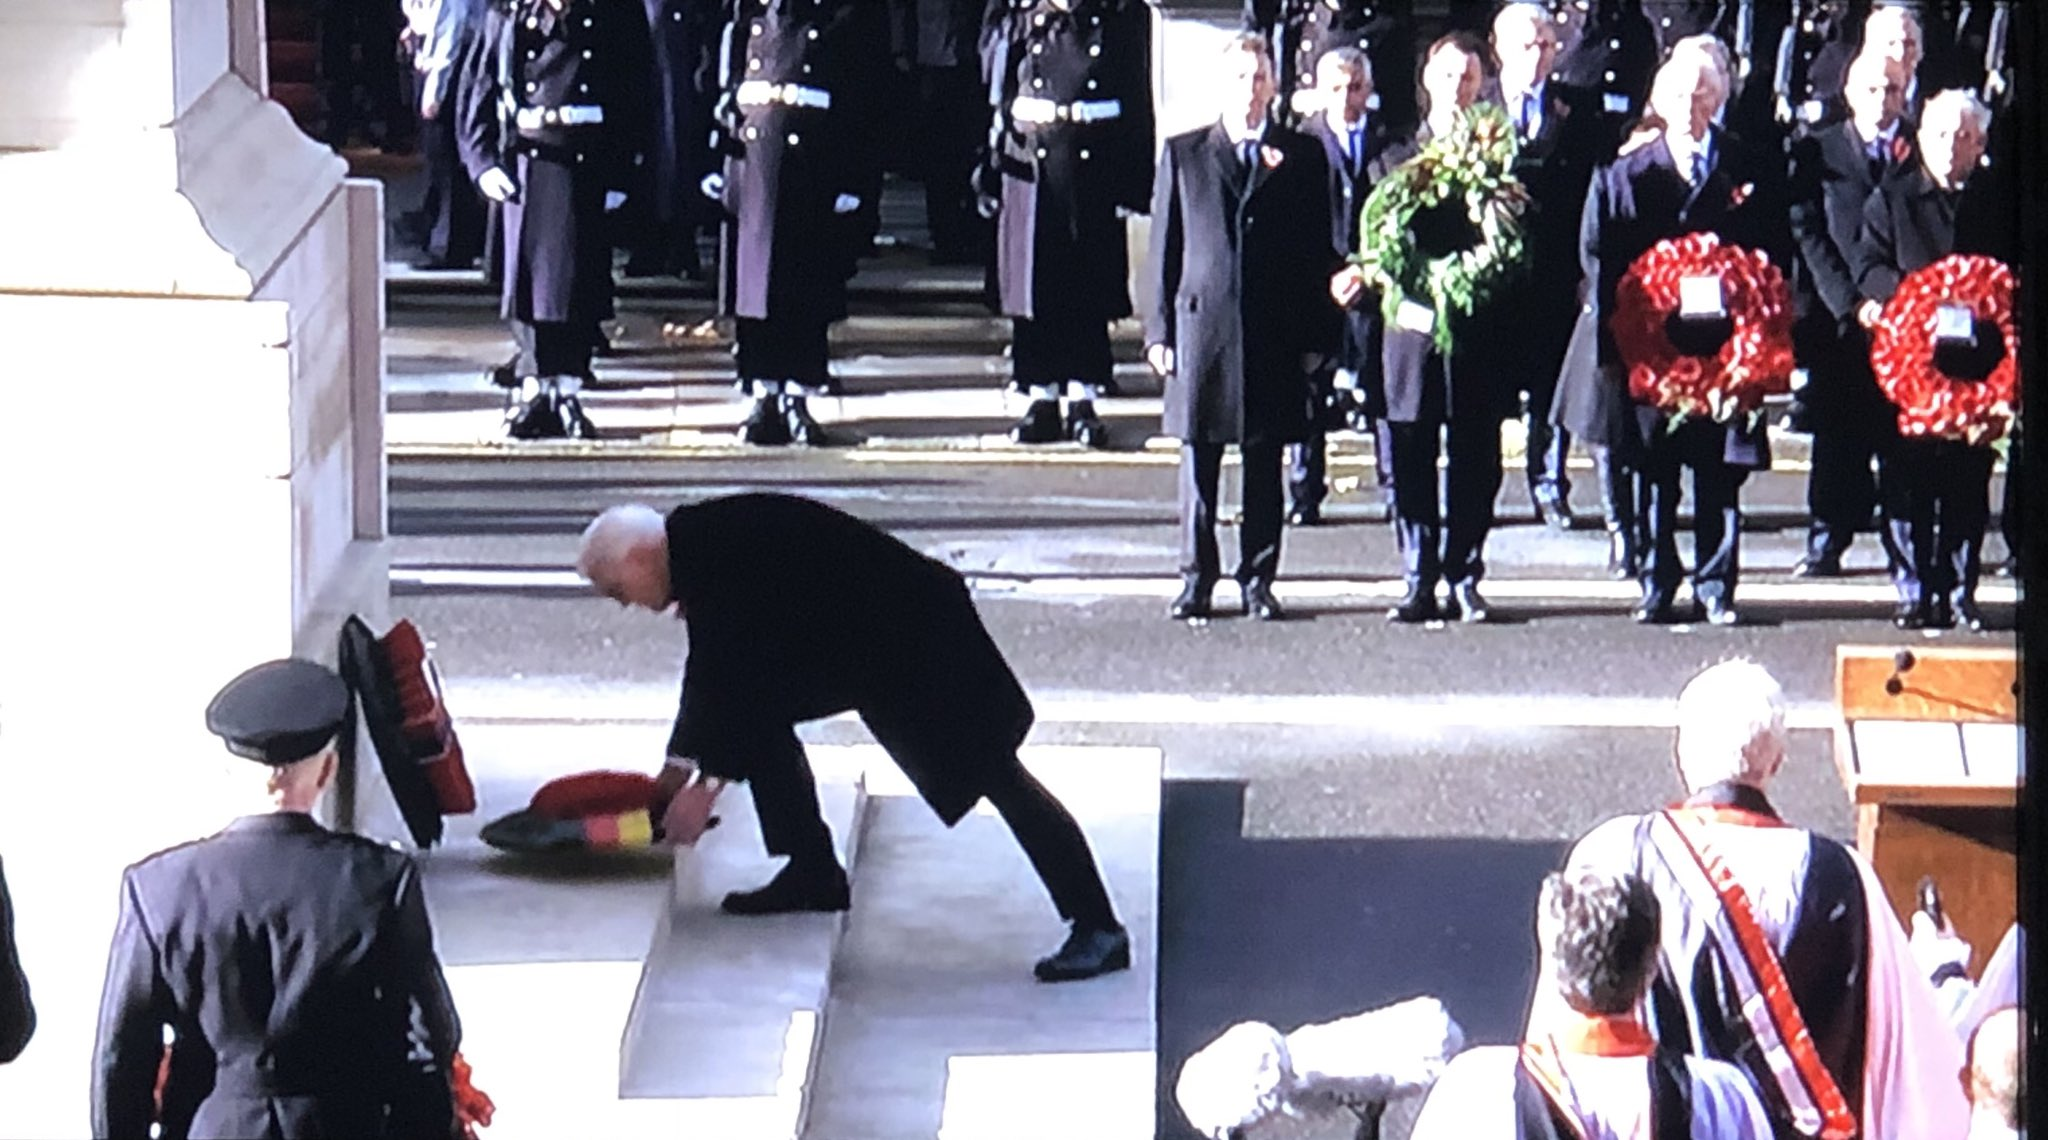 Frank-Walter Steinmeier, Germany's president lays a wreath at the Cenotaph which is very fitting. It is a shame though that in discussions about WW1 in the UK only the Western Front is remembered. Salonika, Middle East, East Africa all forgotten. Gallipoli is the only exception. https://t.co/PBPgDa0Pug